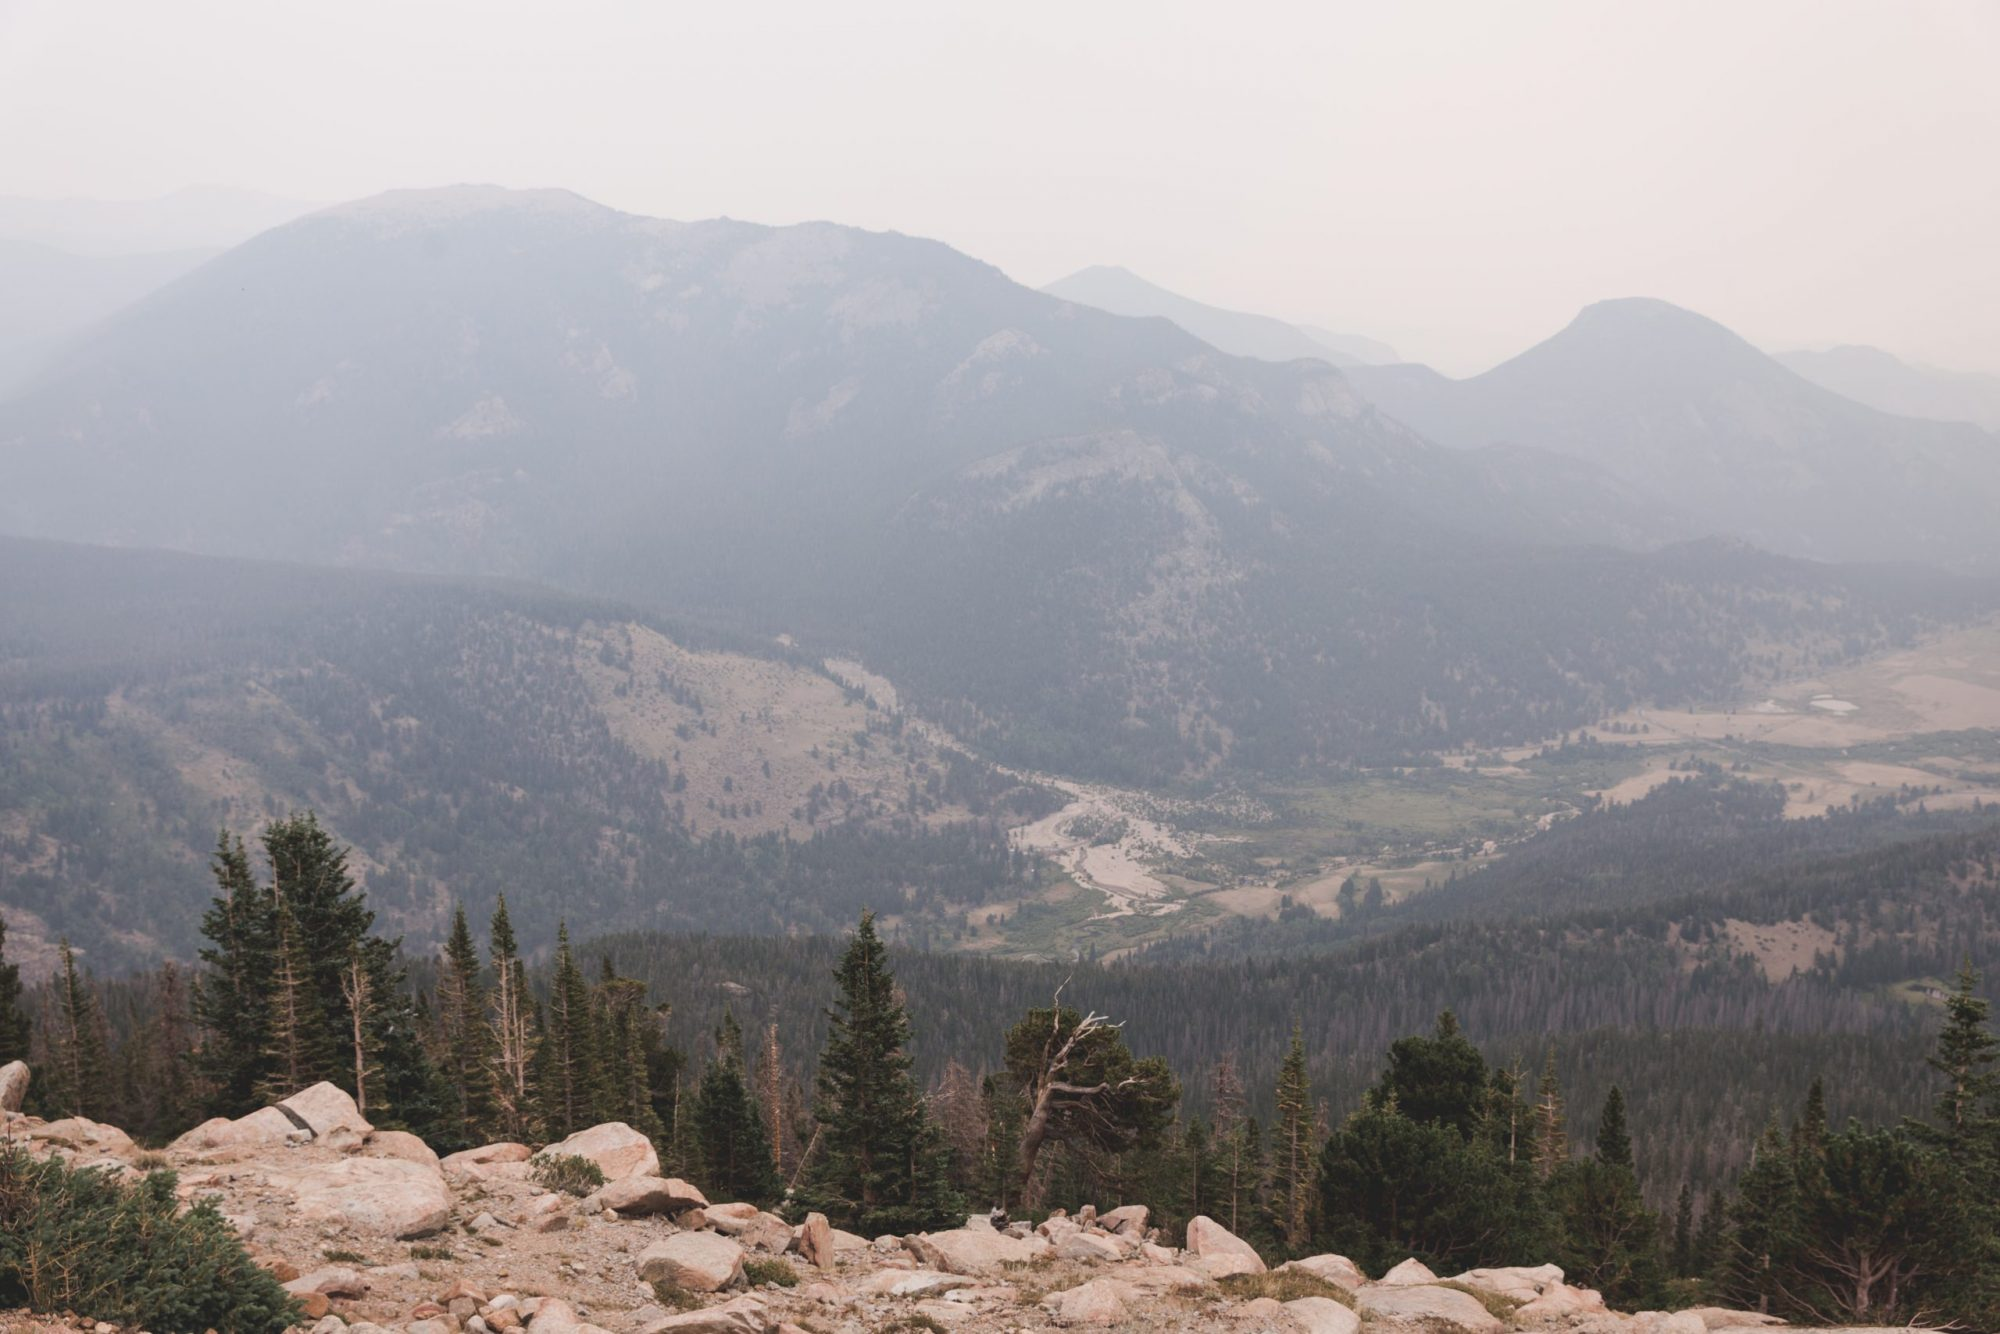 Rocky Mountain National Park Rainbow Curve Overlook has a view mountains and pine trees